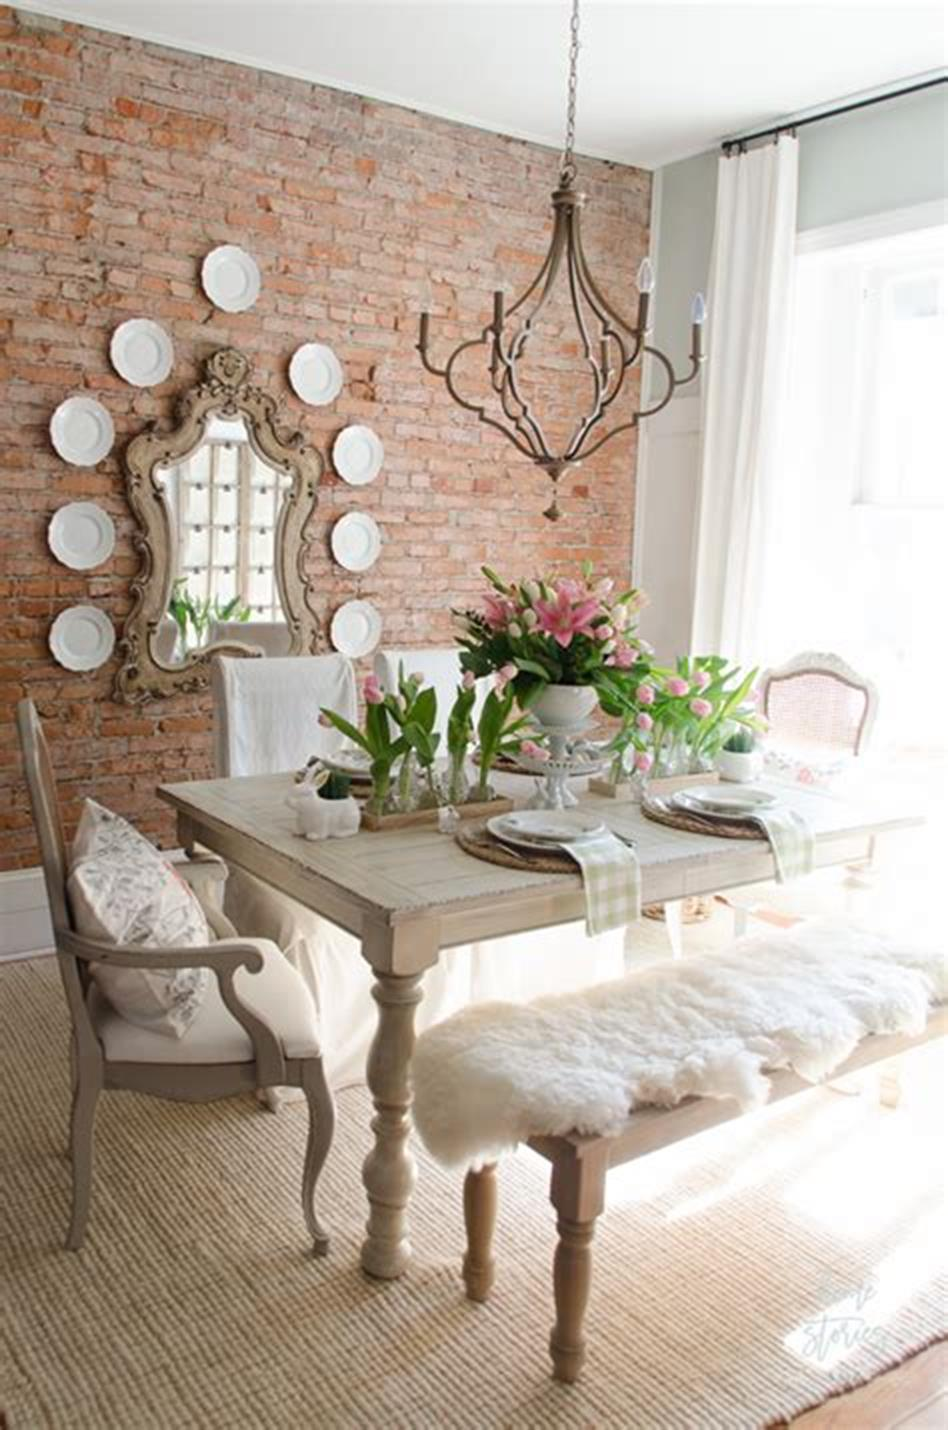 35 Stunning Spring Kitchen and Dining Room Decorating Ideas 2019 23